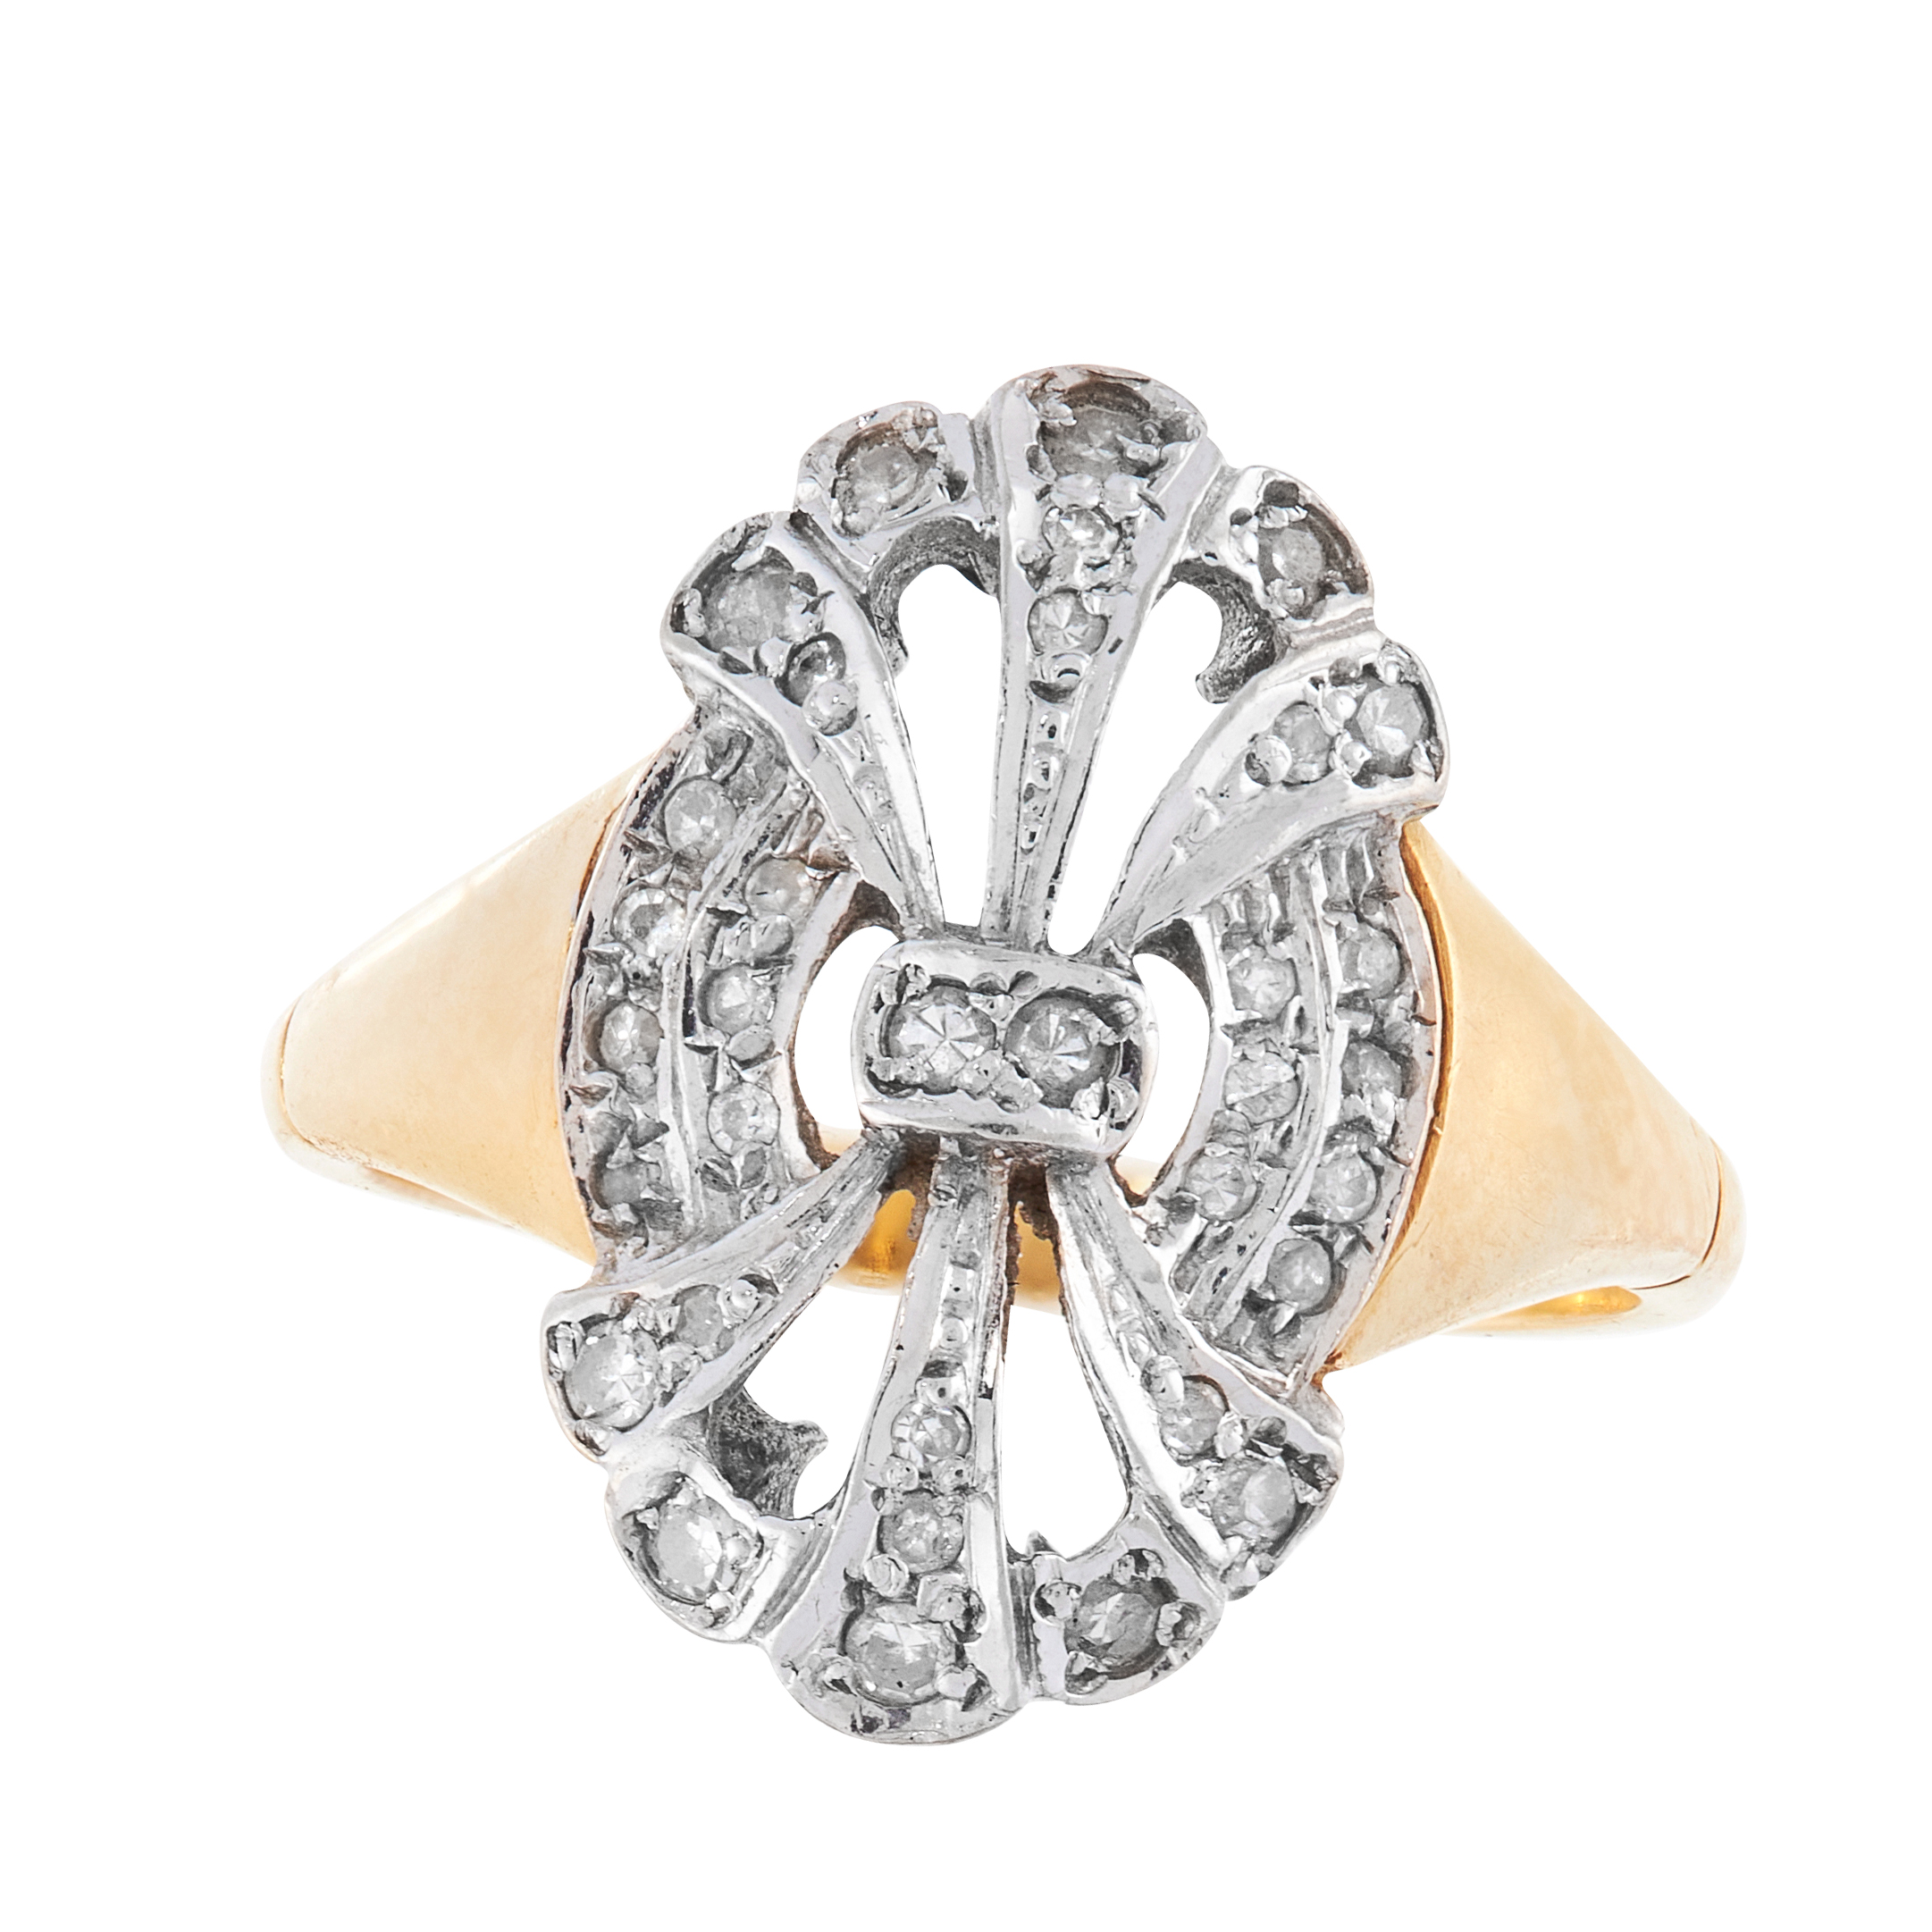 A DIAMOND DRESS RING in 18ct yellow gold, the stylised face of openwork design, set with single